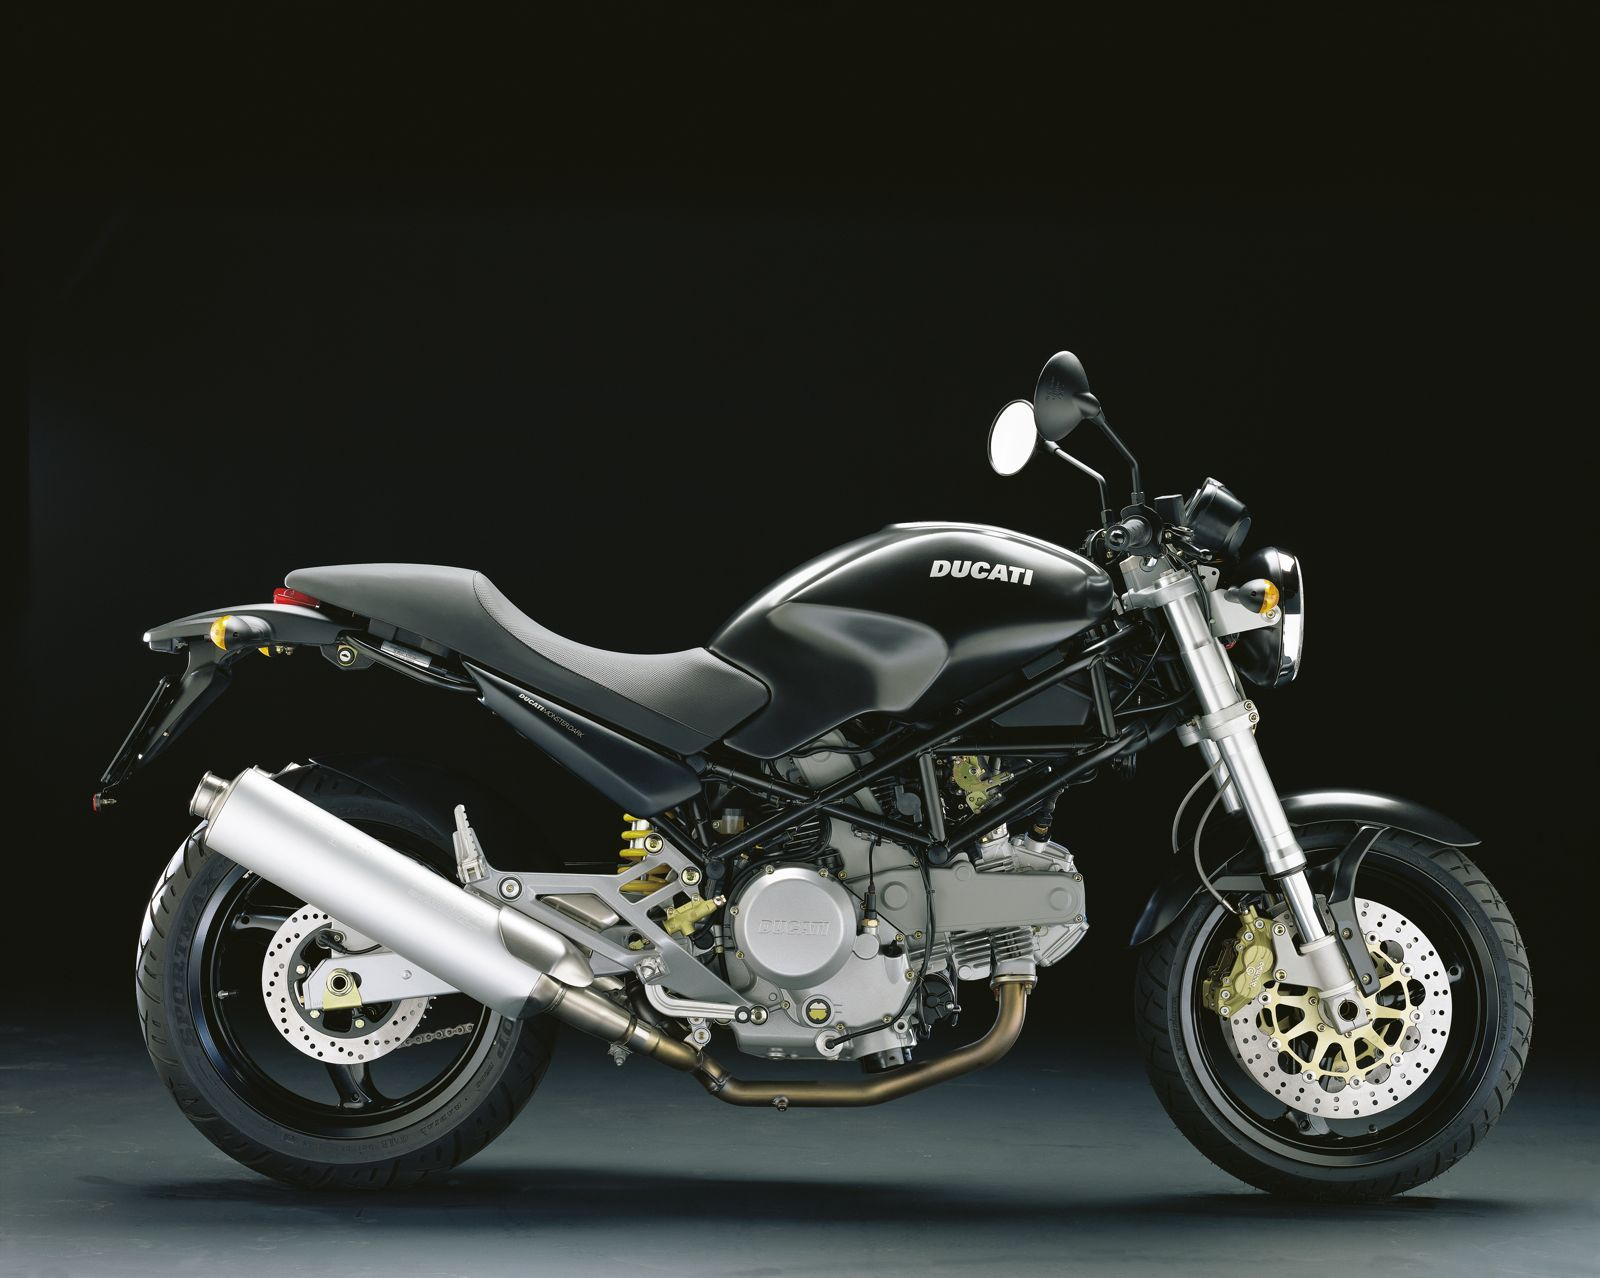 ducati monster 620ie motorcycles ducati monster ducati monster 620 ducati motorcycles. Black Bedroom Furniture Sets. Home Design Ideas